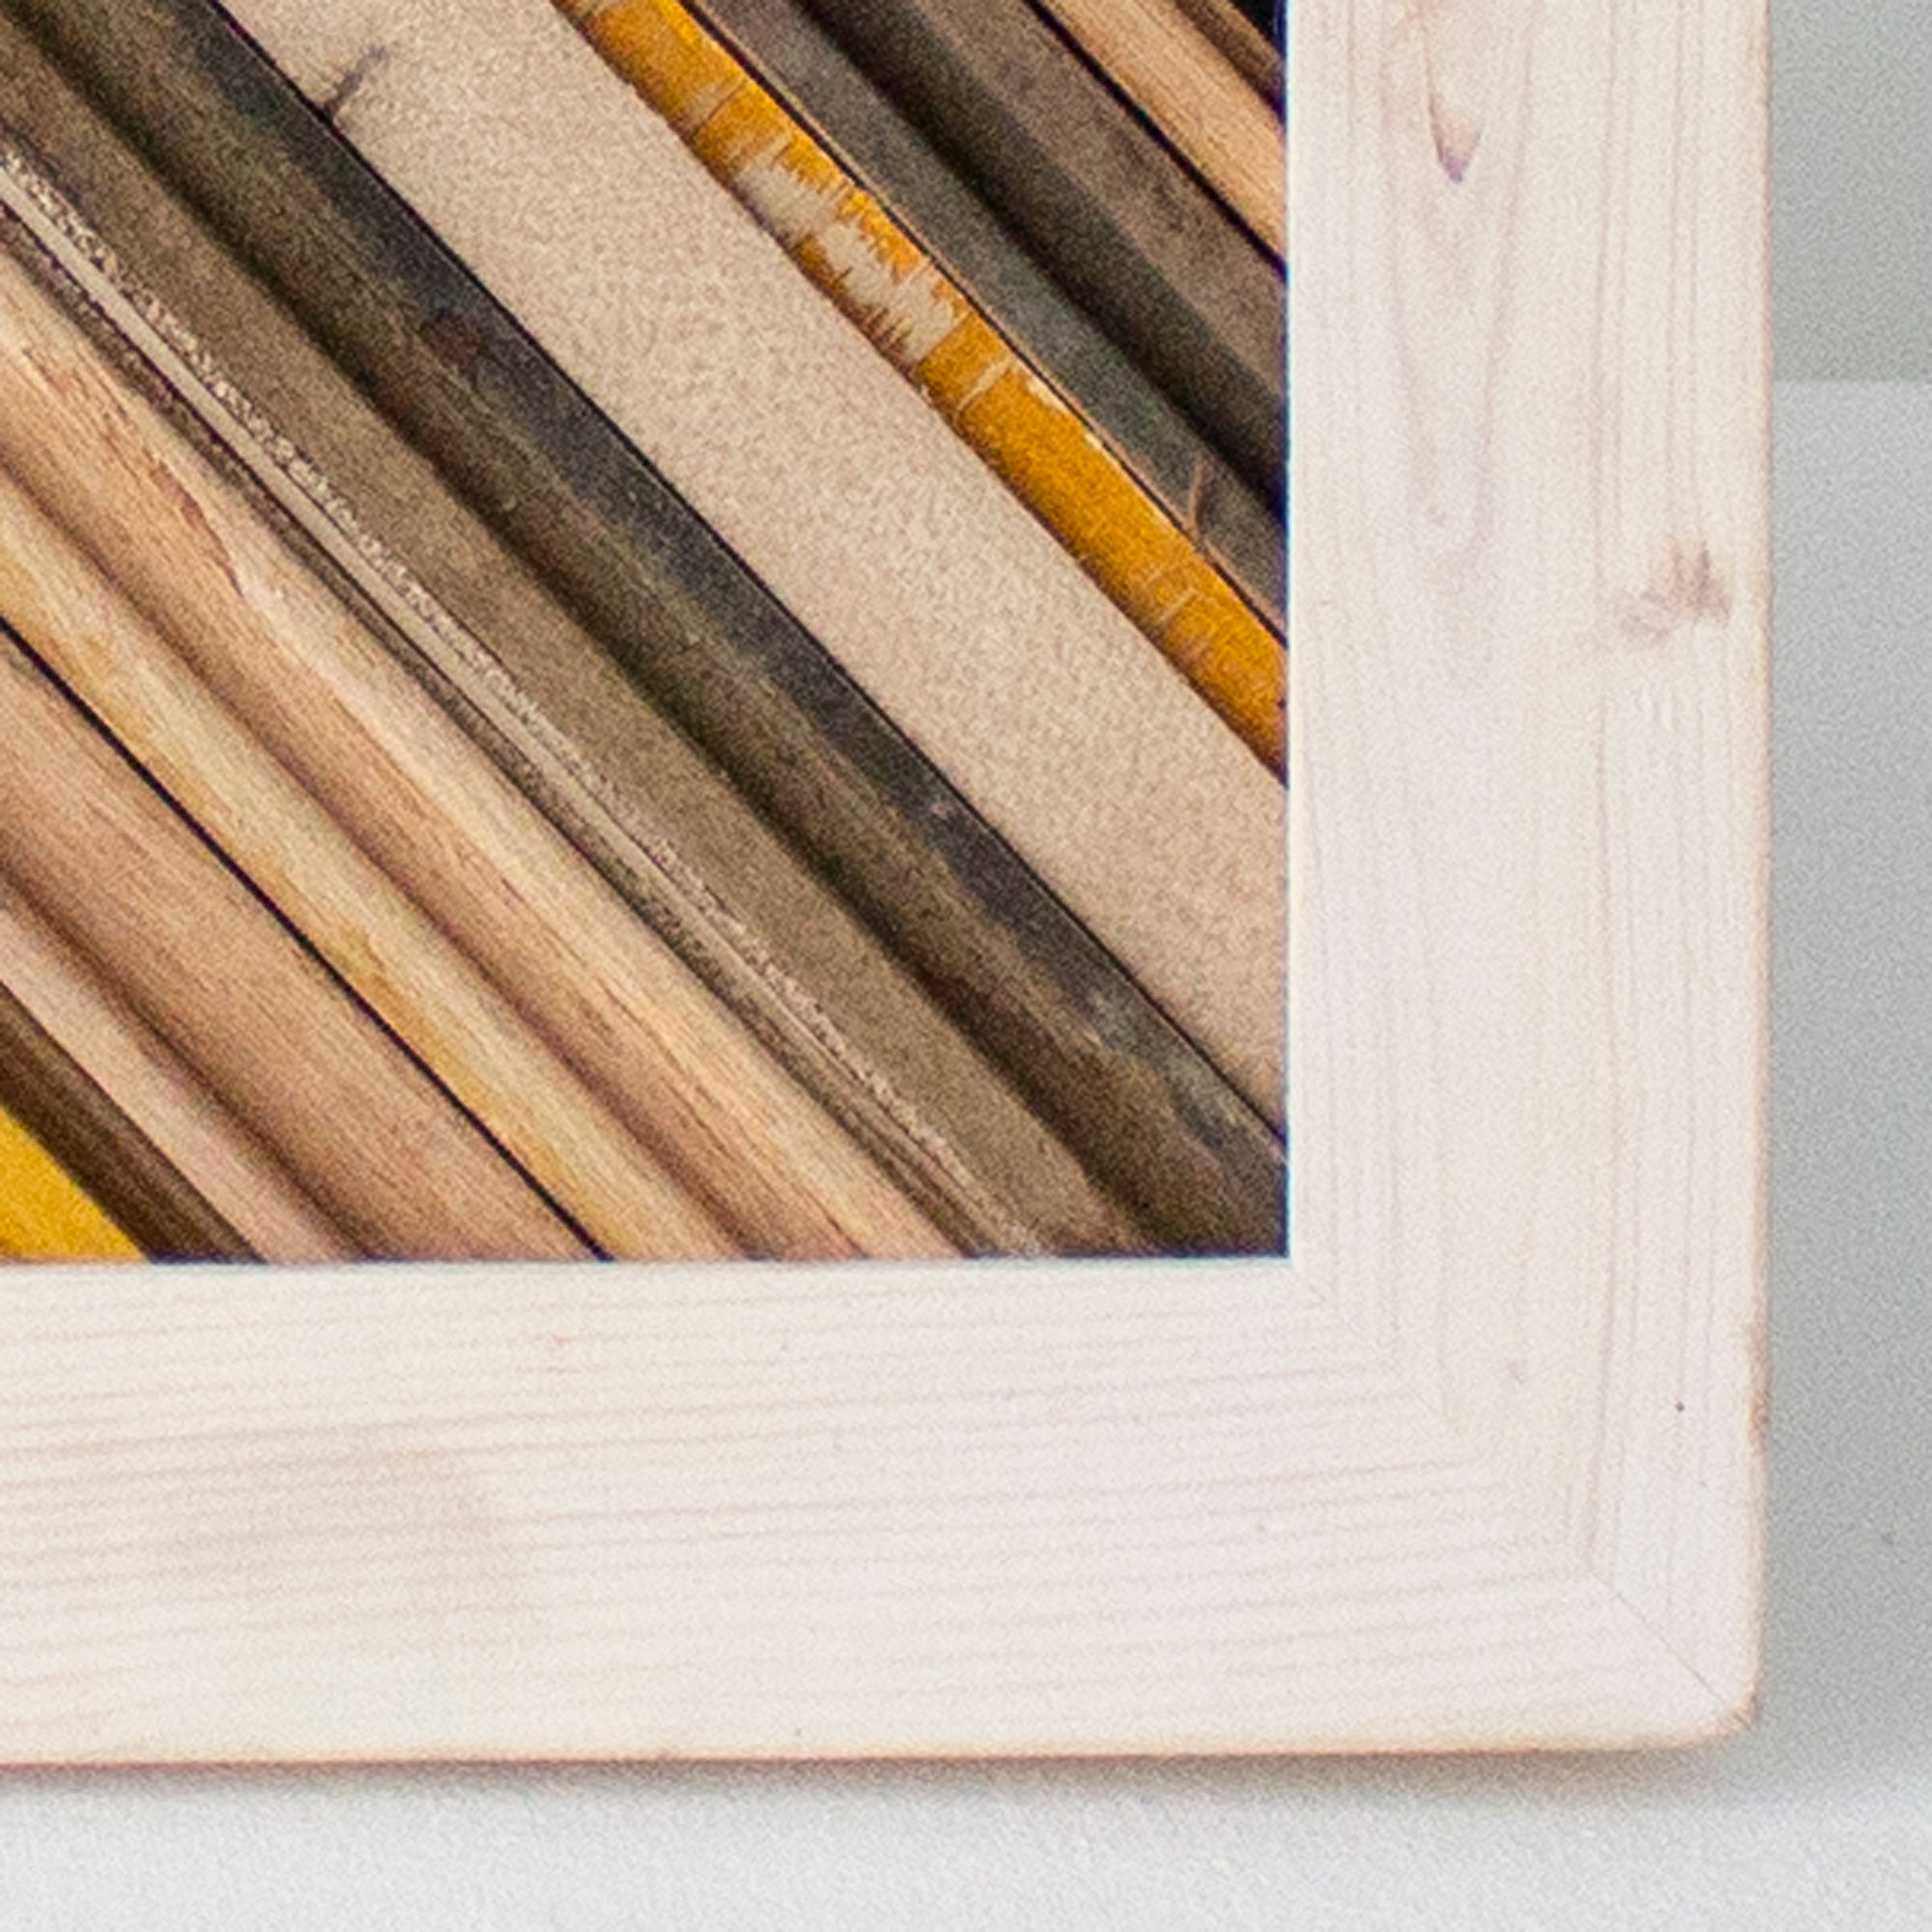 Reclaimed Wood Assemblage | Wall Hanging | Oak and Pine with Whitewash Frame, Mutual Adoration, Handcrafted Home Goods and Gifts